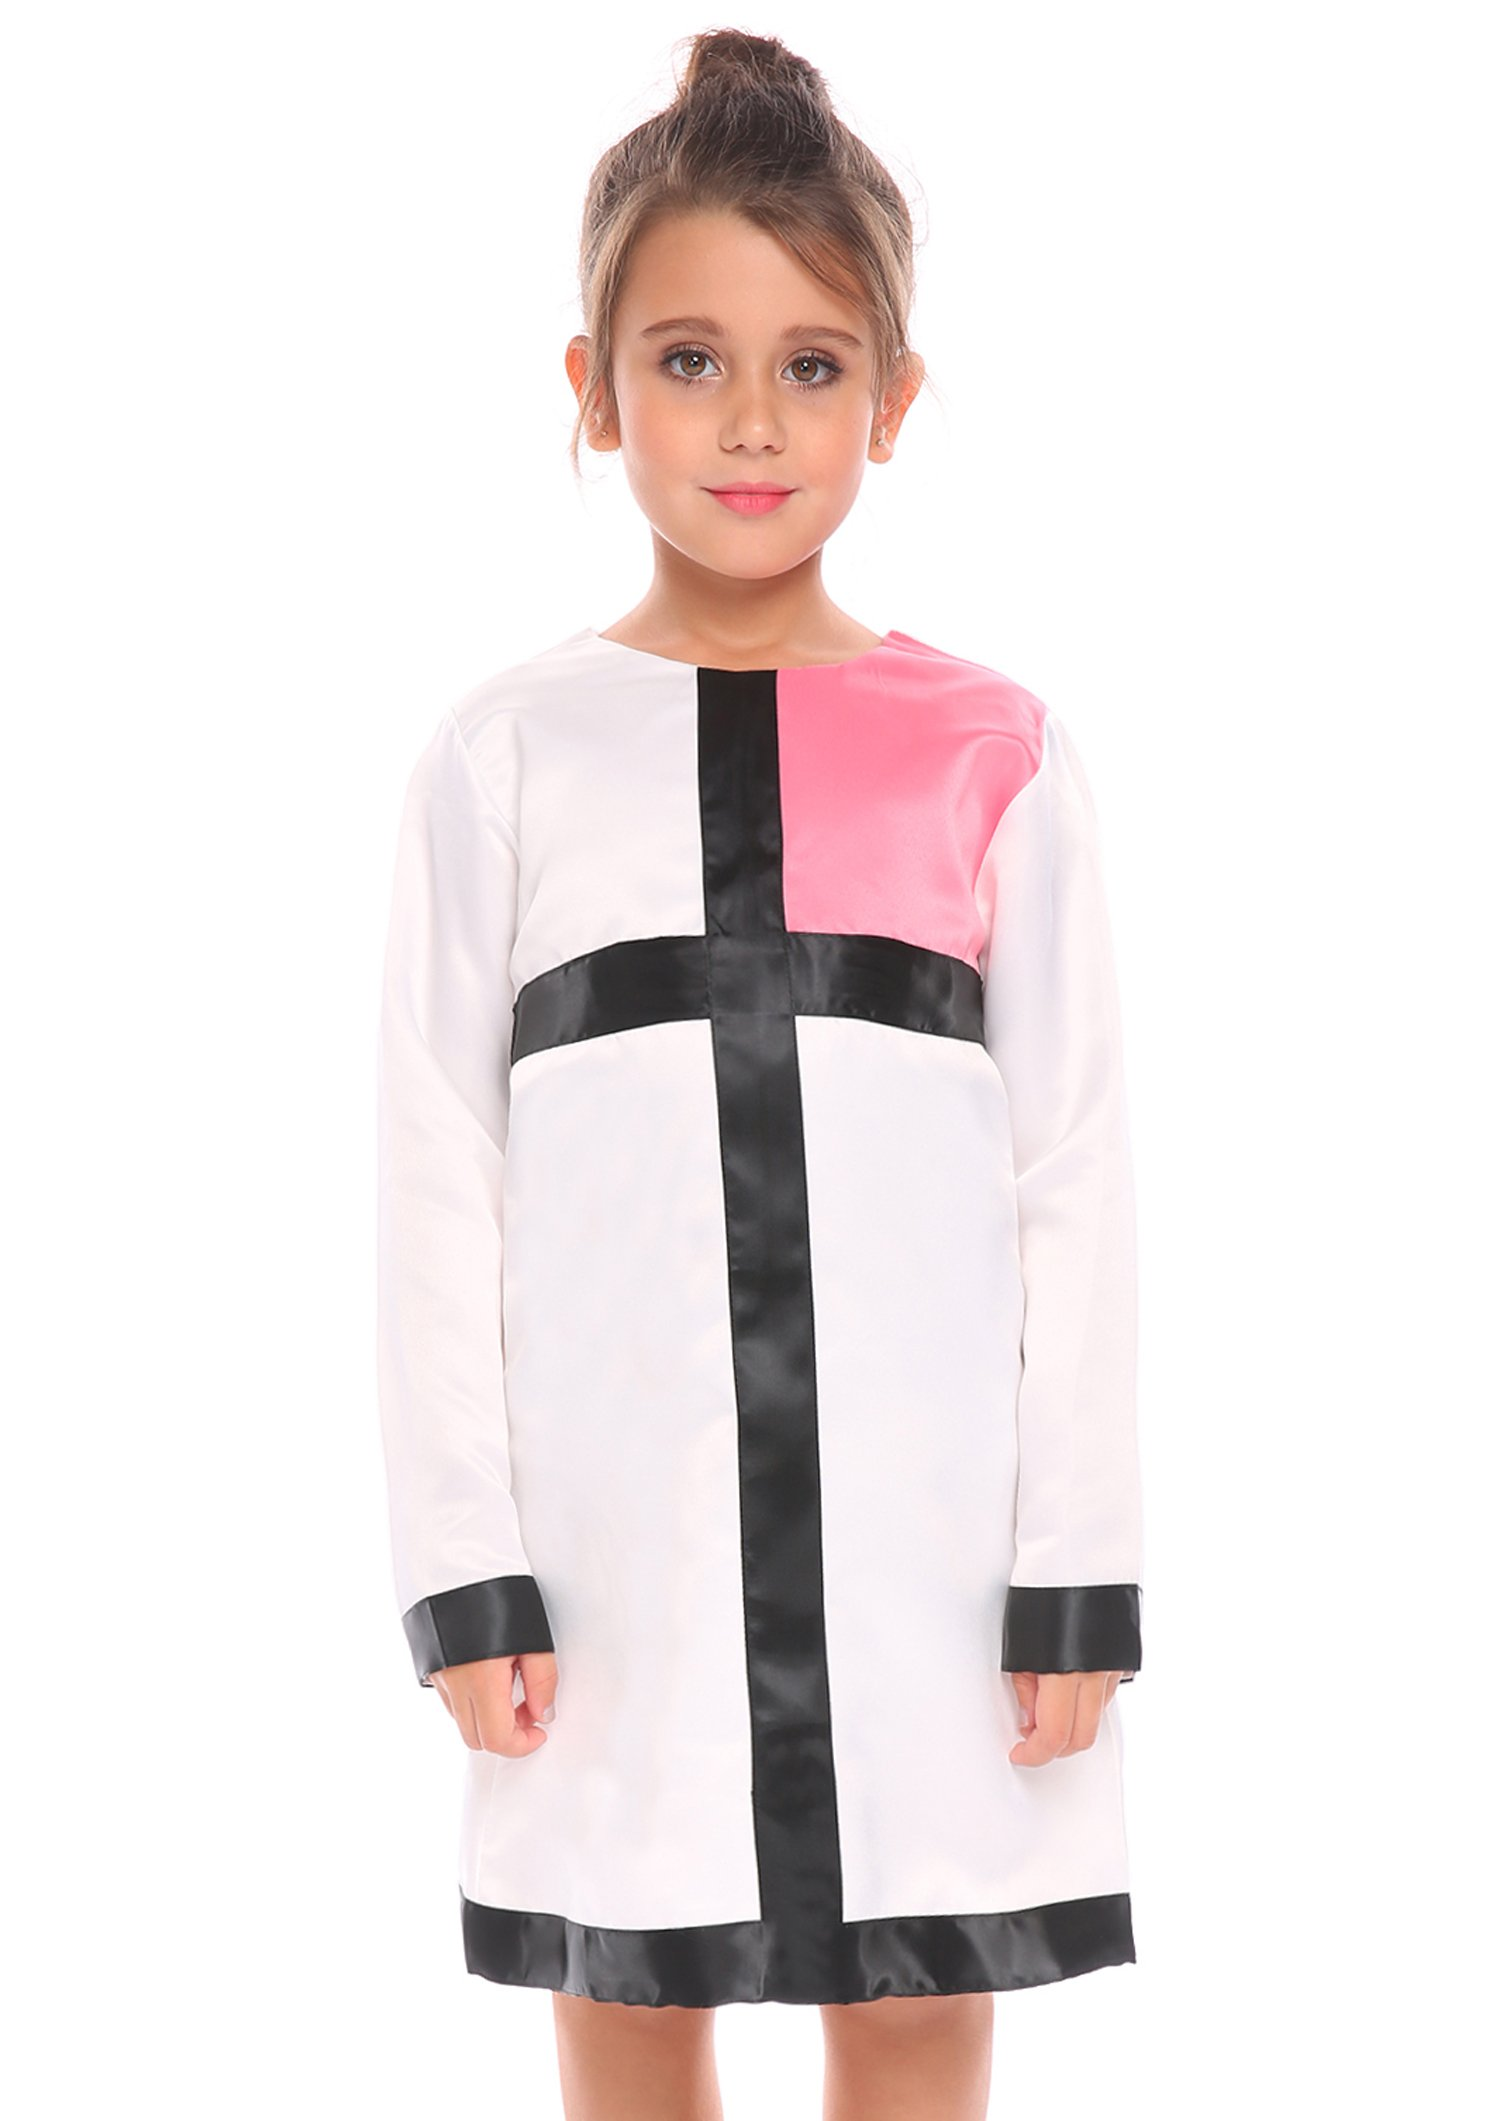 Arshiner Kids Girls Long Sleeve Church Dress Color Block MOD Style Dresses,Pink,130(Age for 8-9 years)